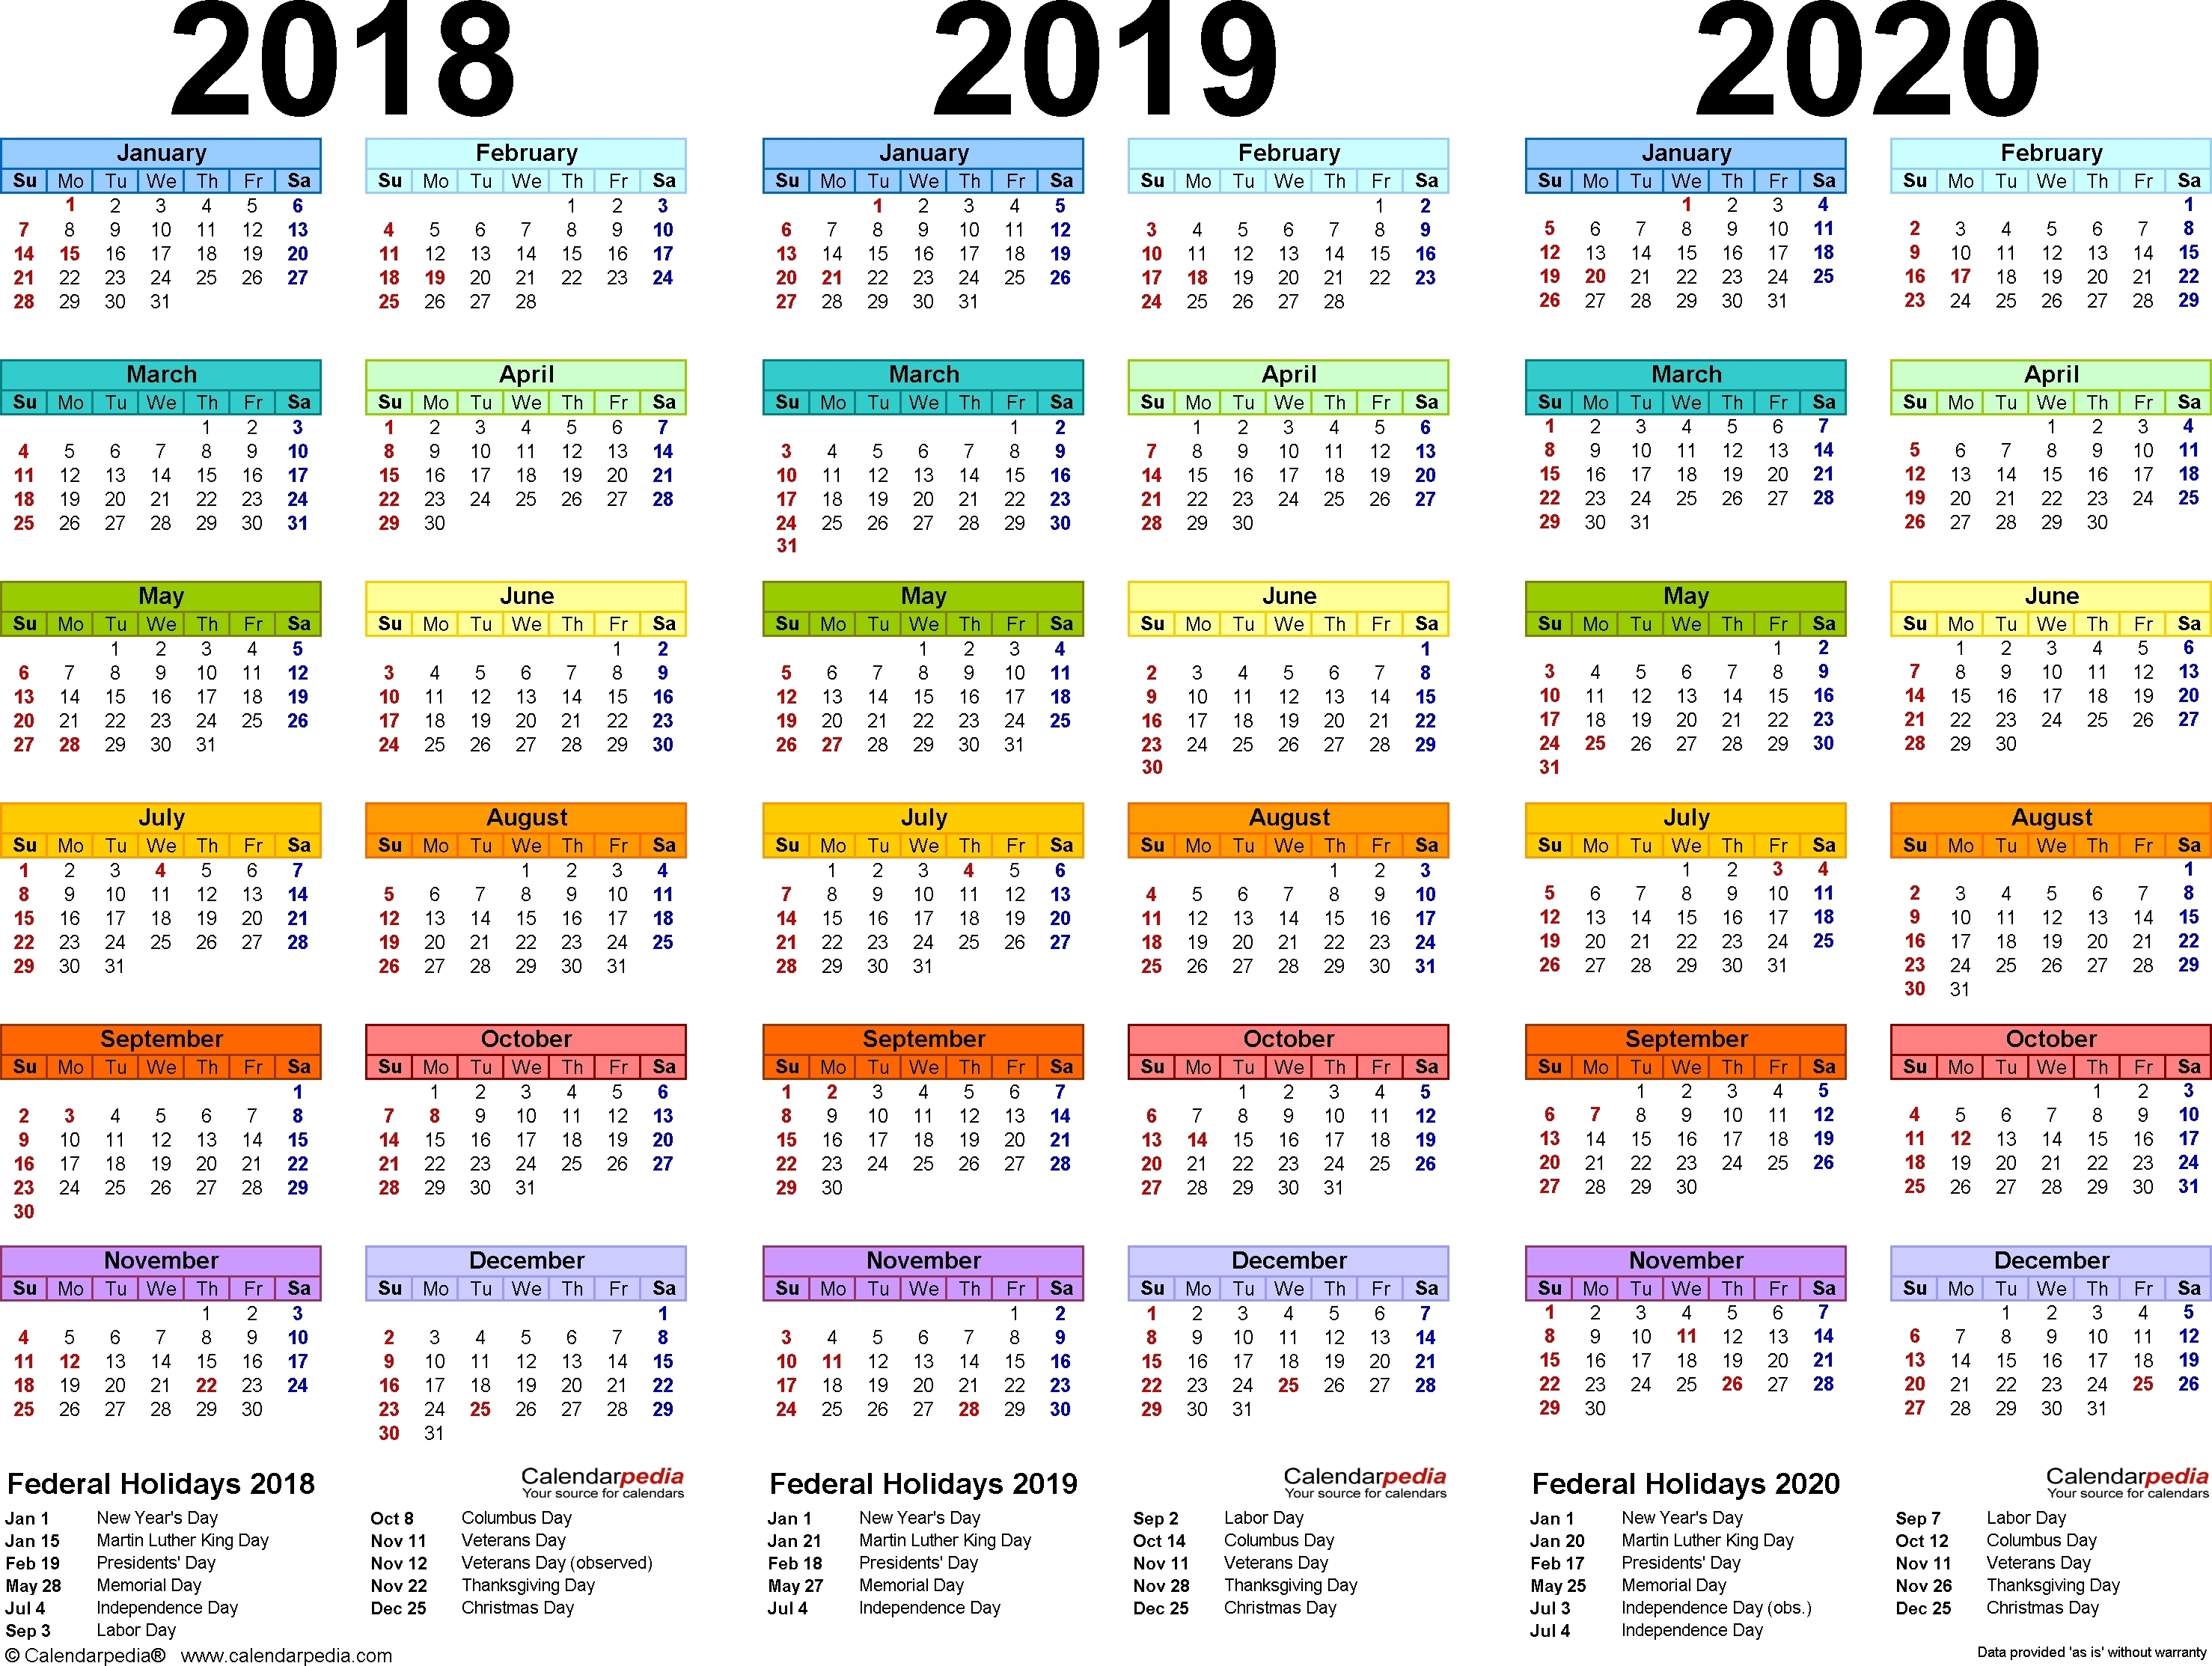 South Africa Easter Holidays 2020 | Venture Inspire-Sa Calendar With Public Holidays 2020